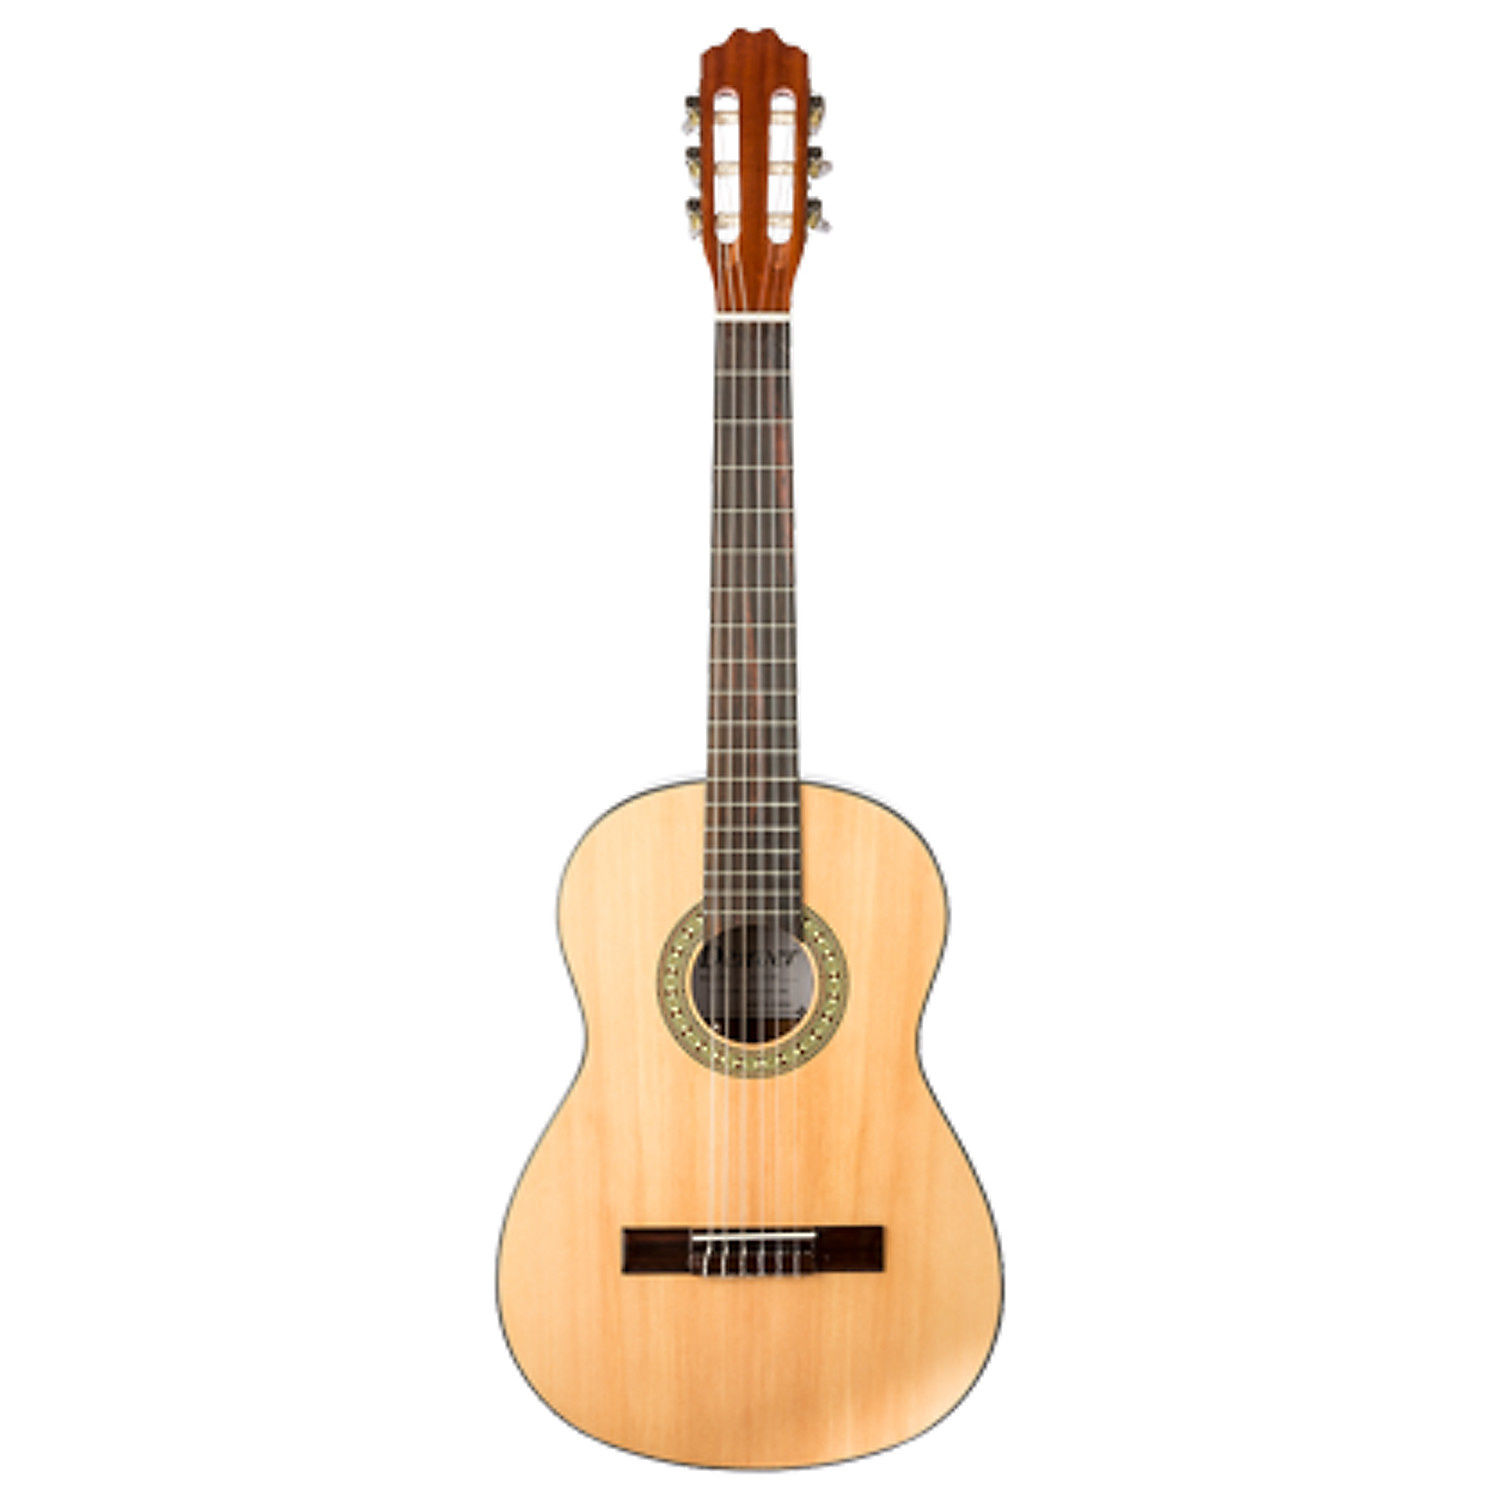 denver classical guitar 1 2 size natural sold at mother of all guitar shop. Black Bedroom Furniture Sets. Home Design Ideas